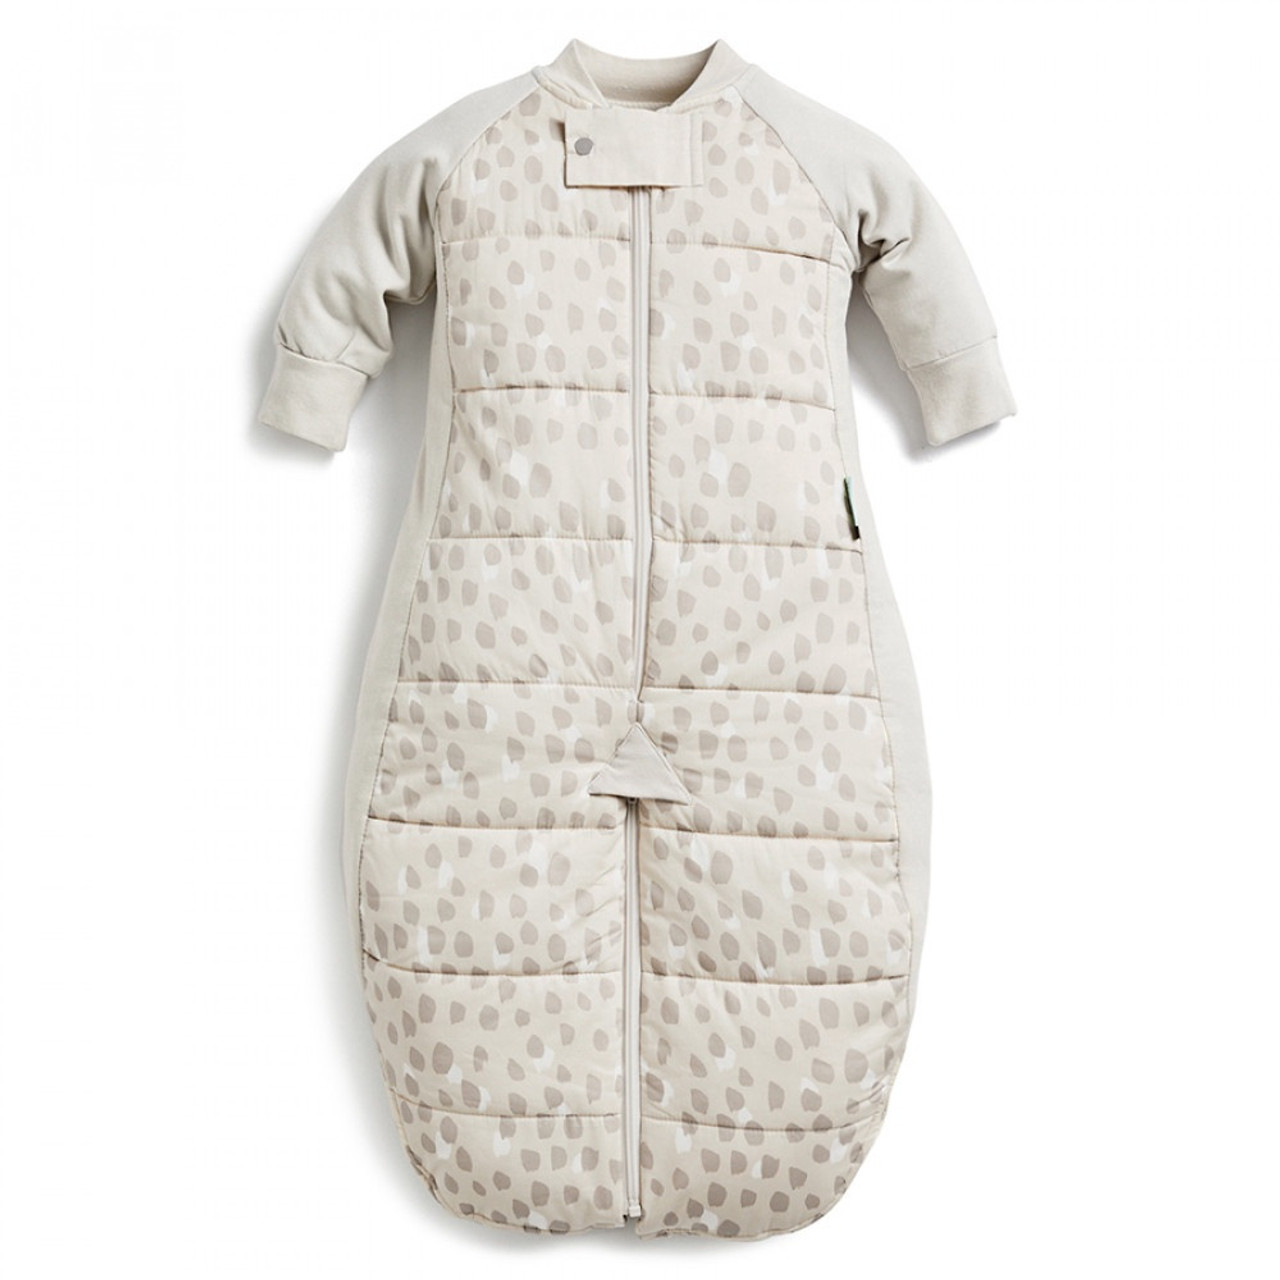 Ergopouch Sleepsuit Bag 3.5 Tog 2-12 Months - FAWN